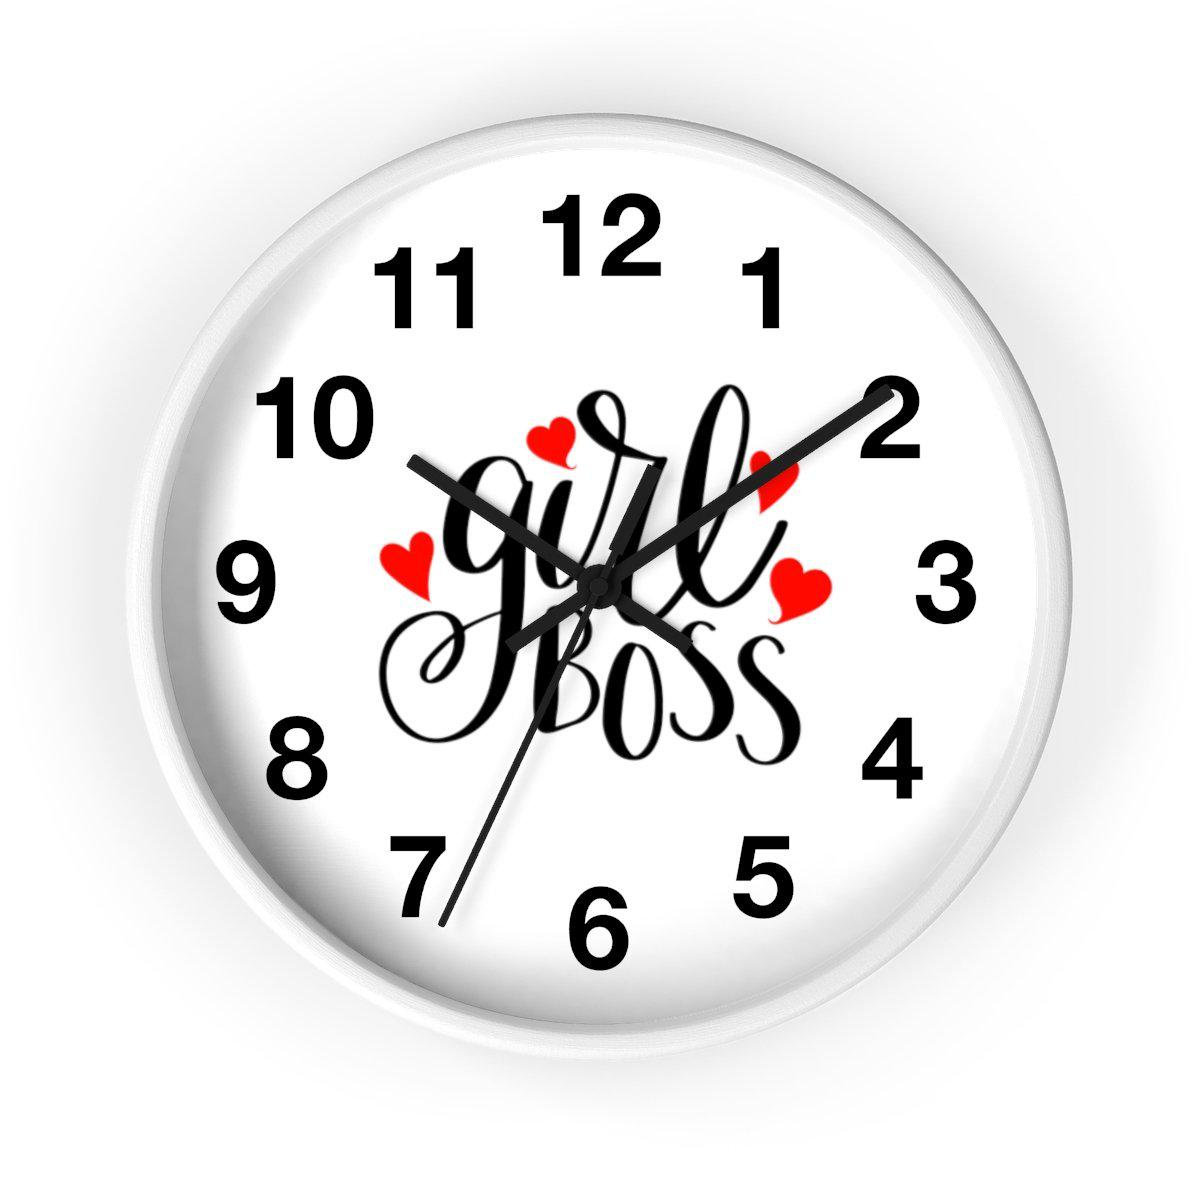 Maison d'Elite Girl Boss Wall clock-Home - Clocks - Wall clocks-Maison d'Elite-White-Black-Très Elite